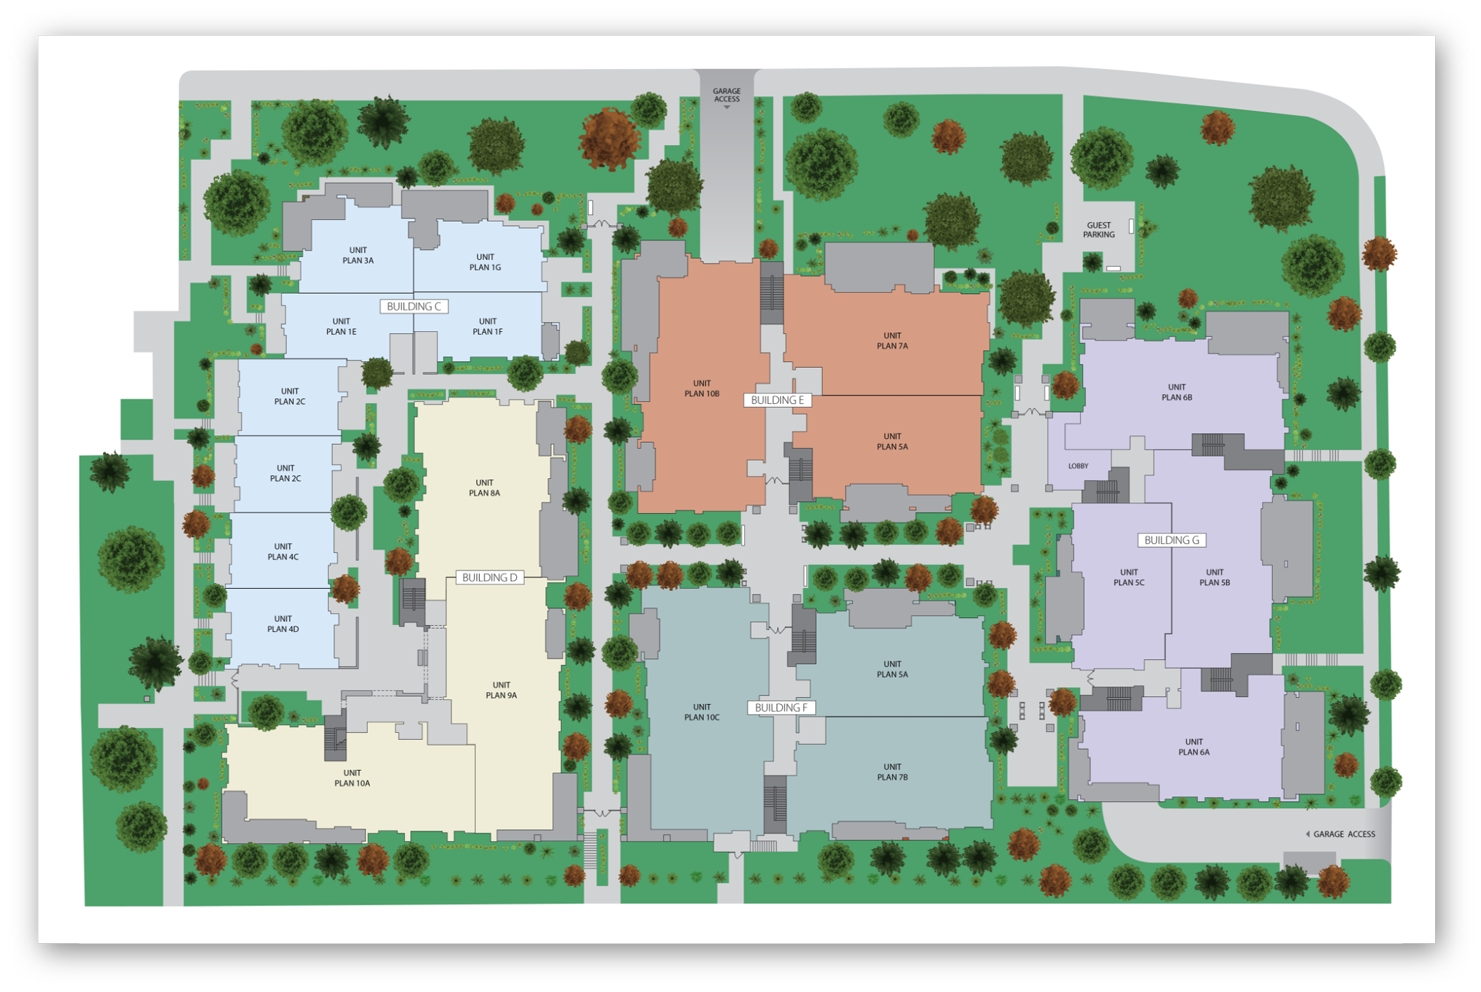 Architectural site map illustration